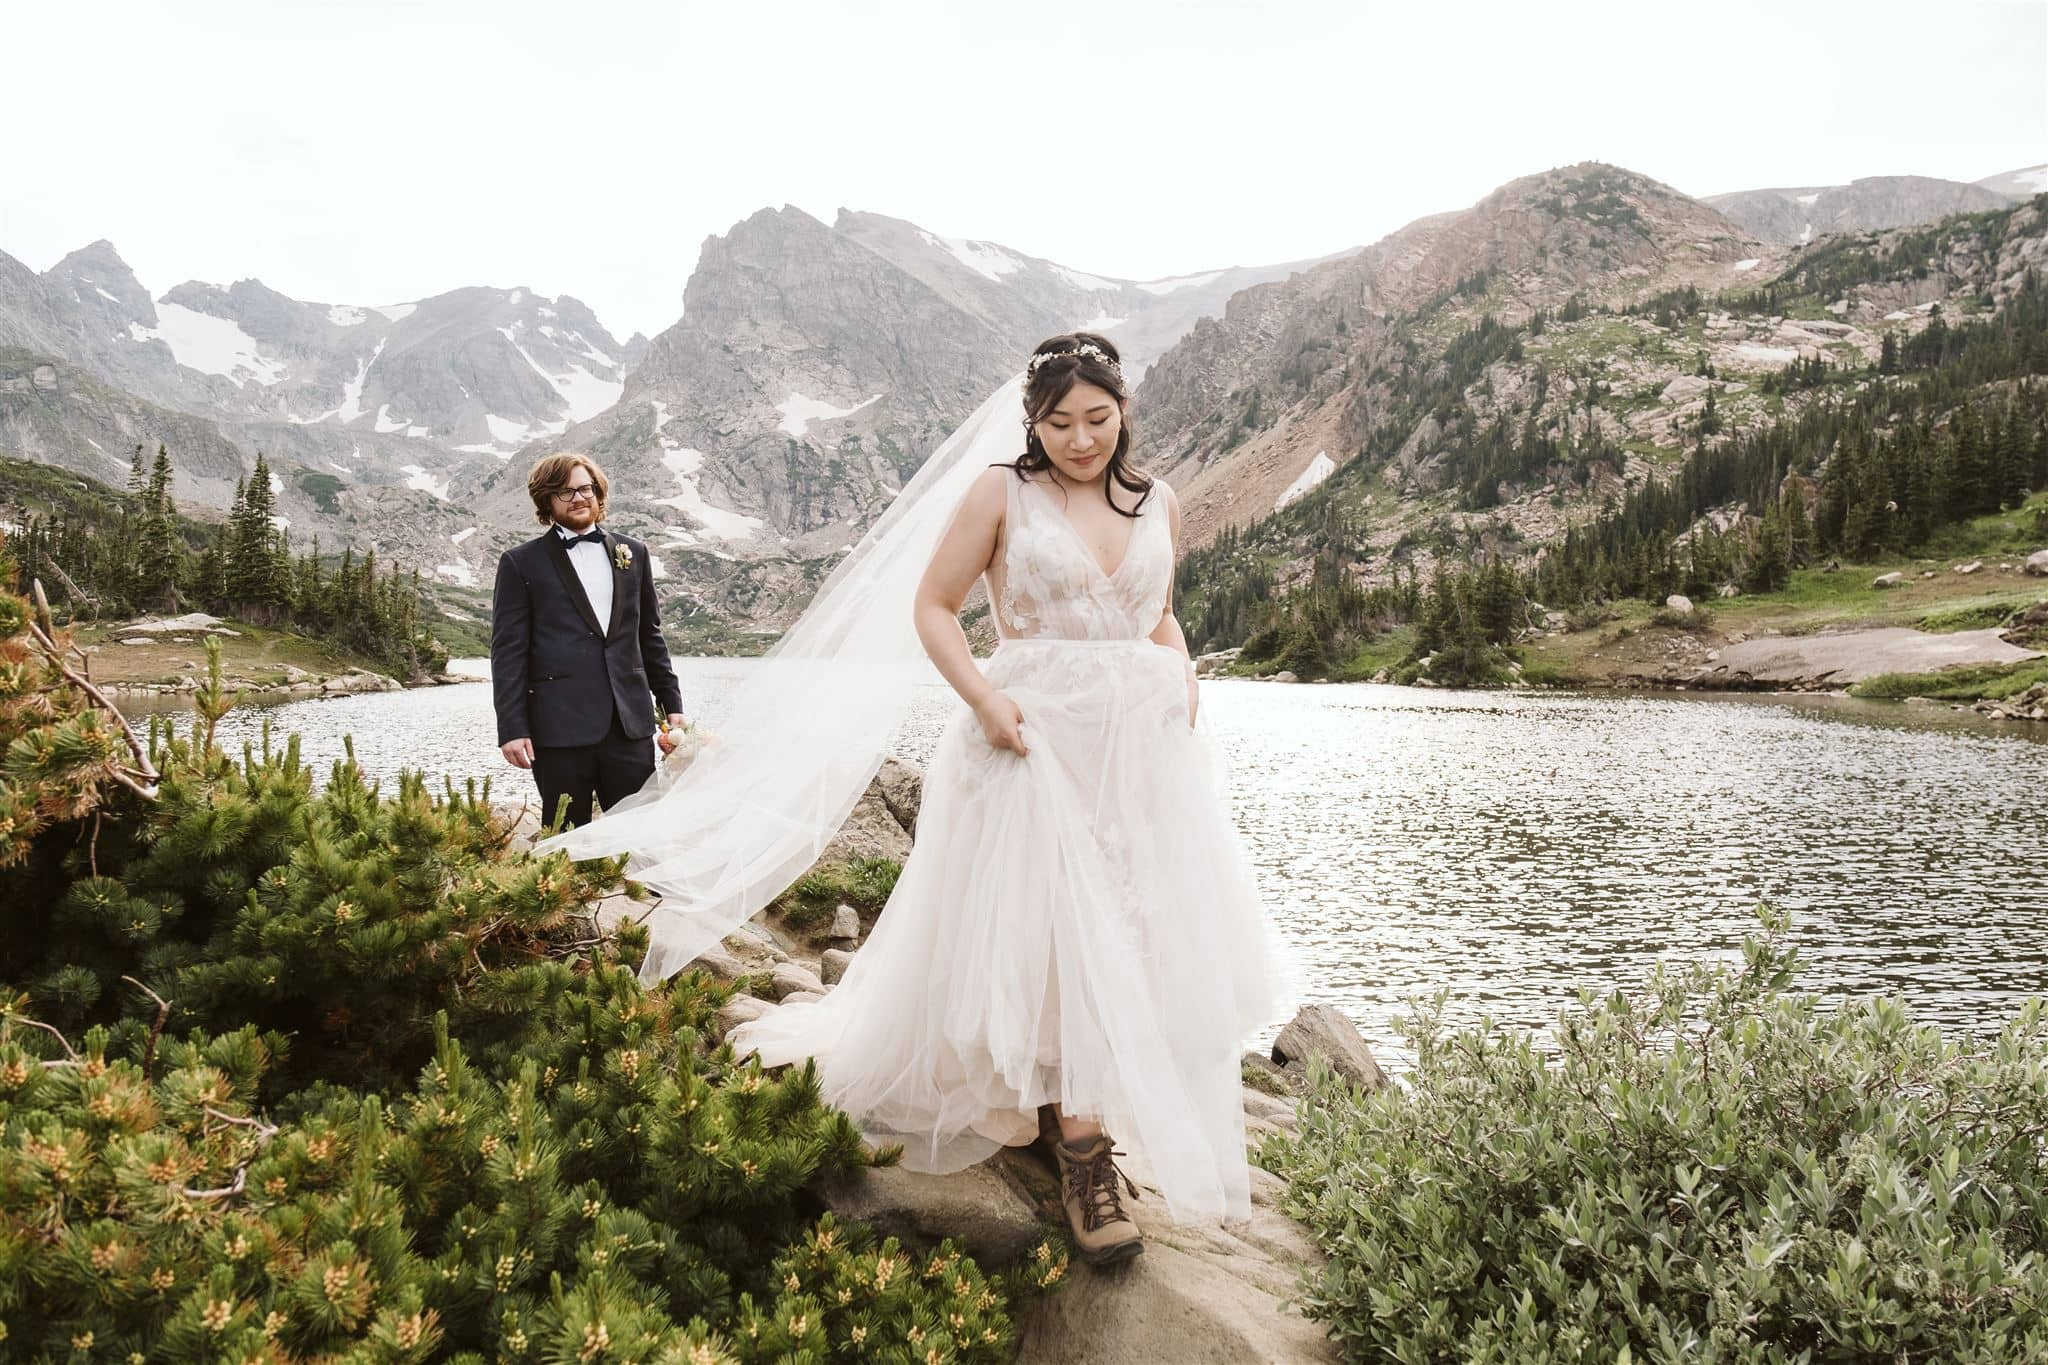 Colorado elopement packages for hiking and adventure weddings